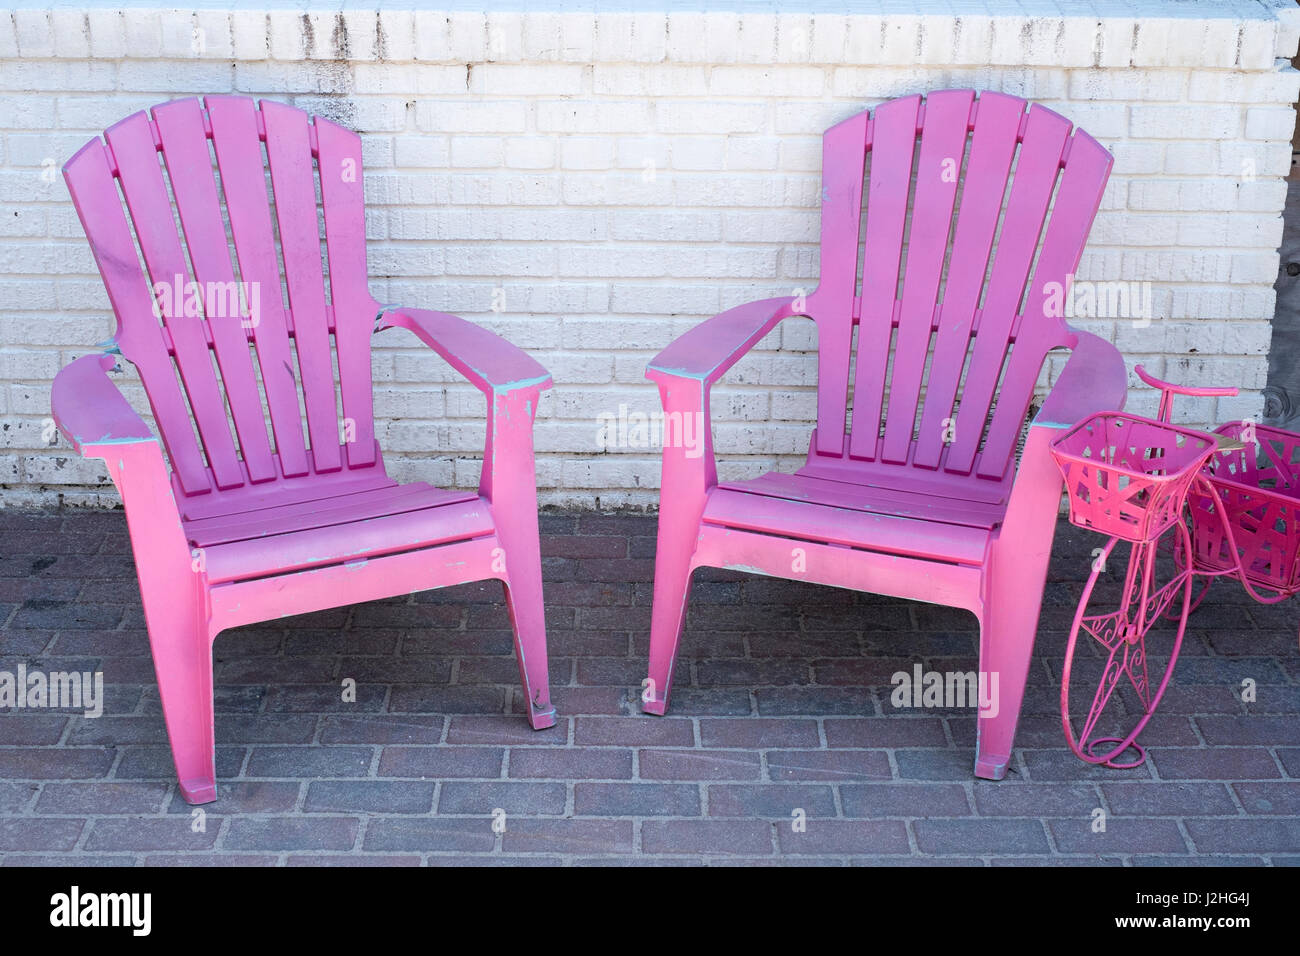 Two Pink Beach Chairs Outside On The Sidewalk Fire Island New York Stock Photo Alamy